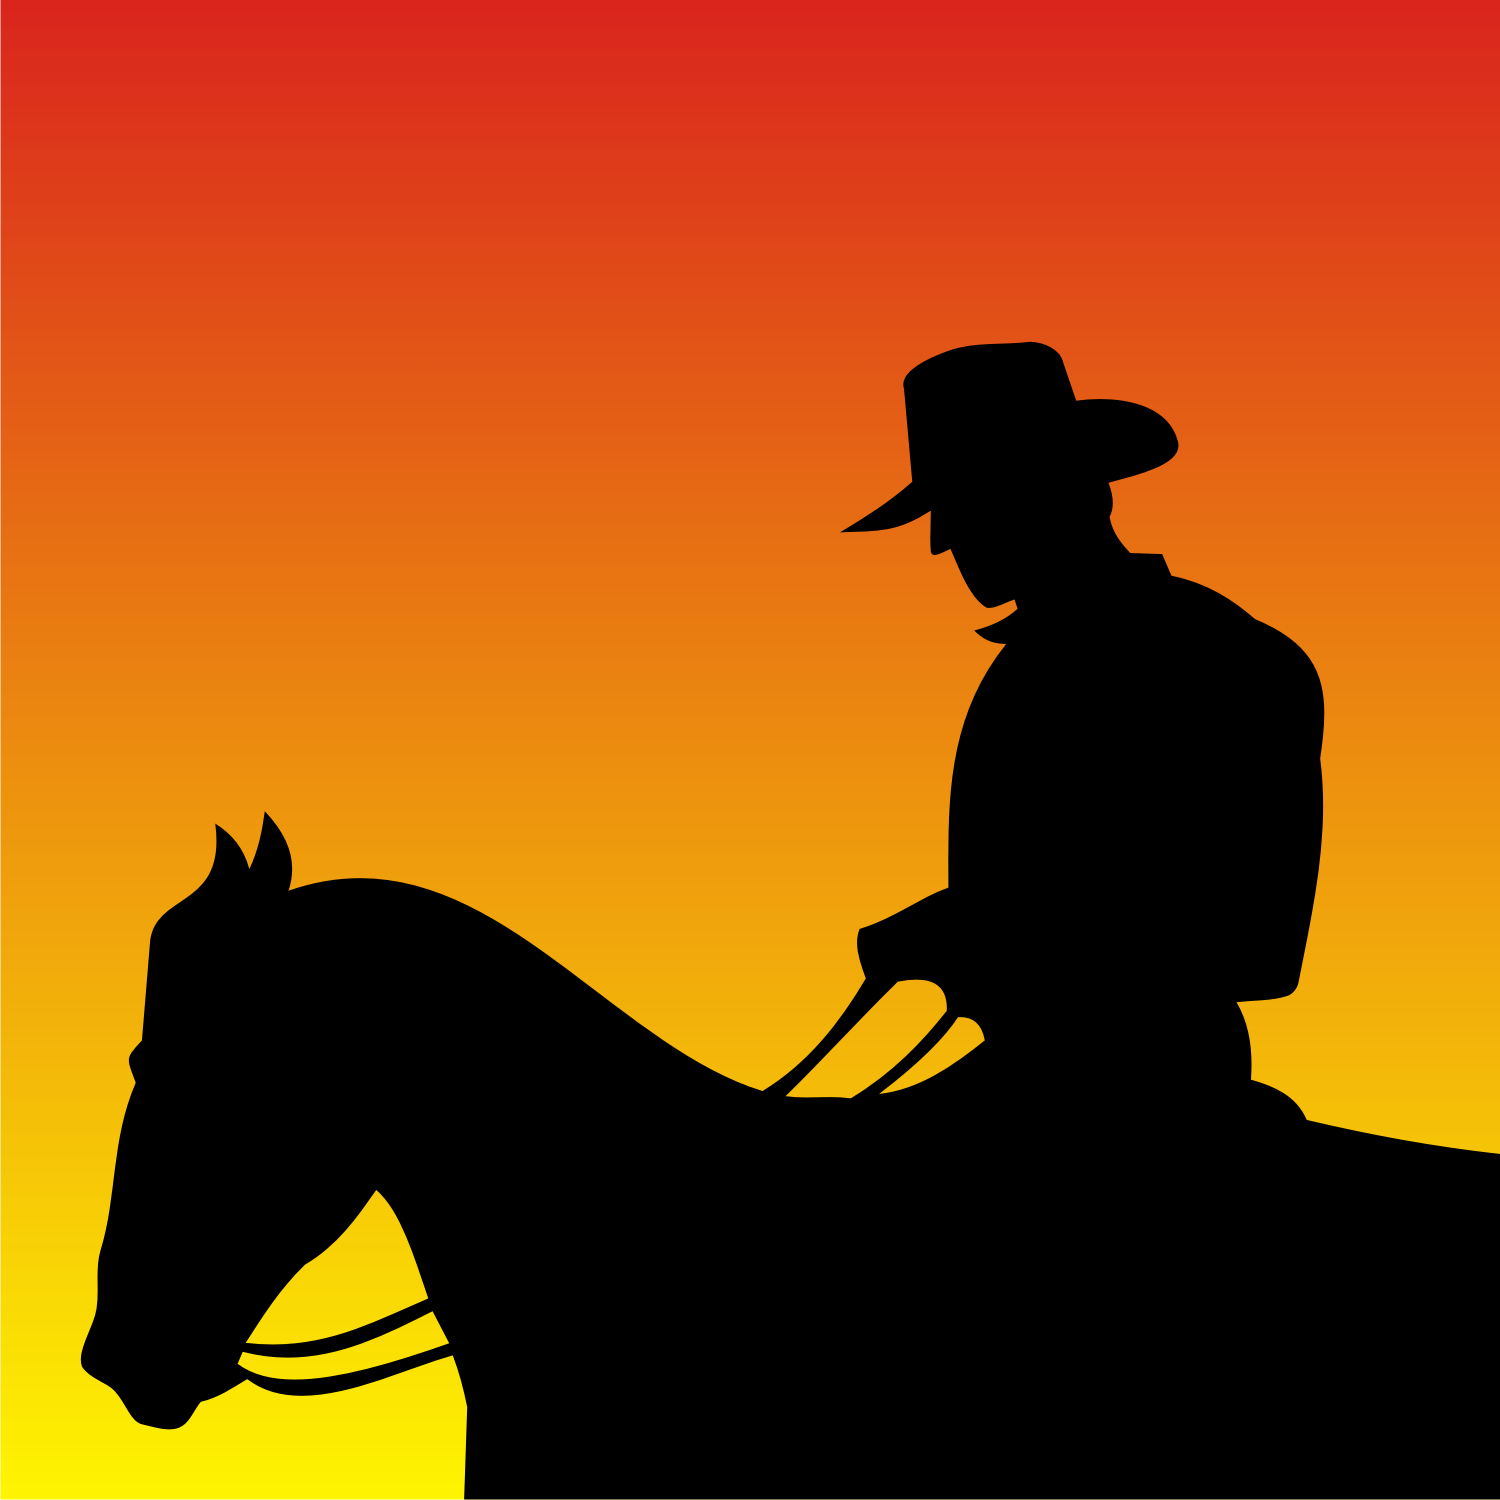 Black Silhouette Of A Cowboy. Vector illustration.